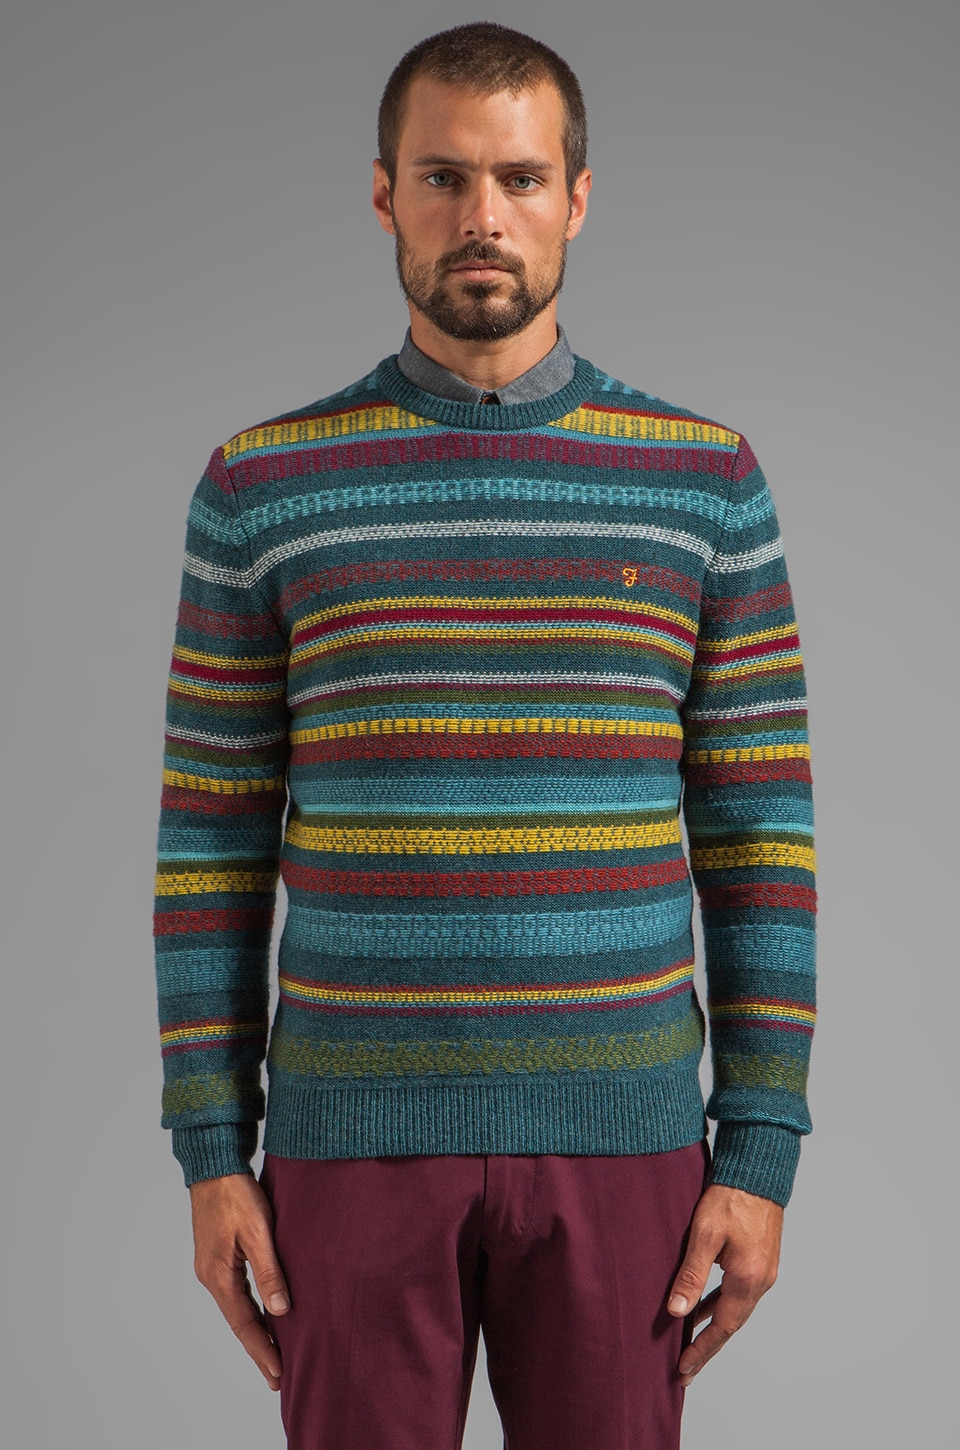 FARAH VINTAGE The Whitmore Pullover in Pacific